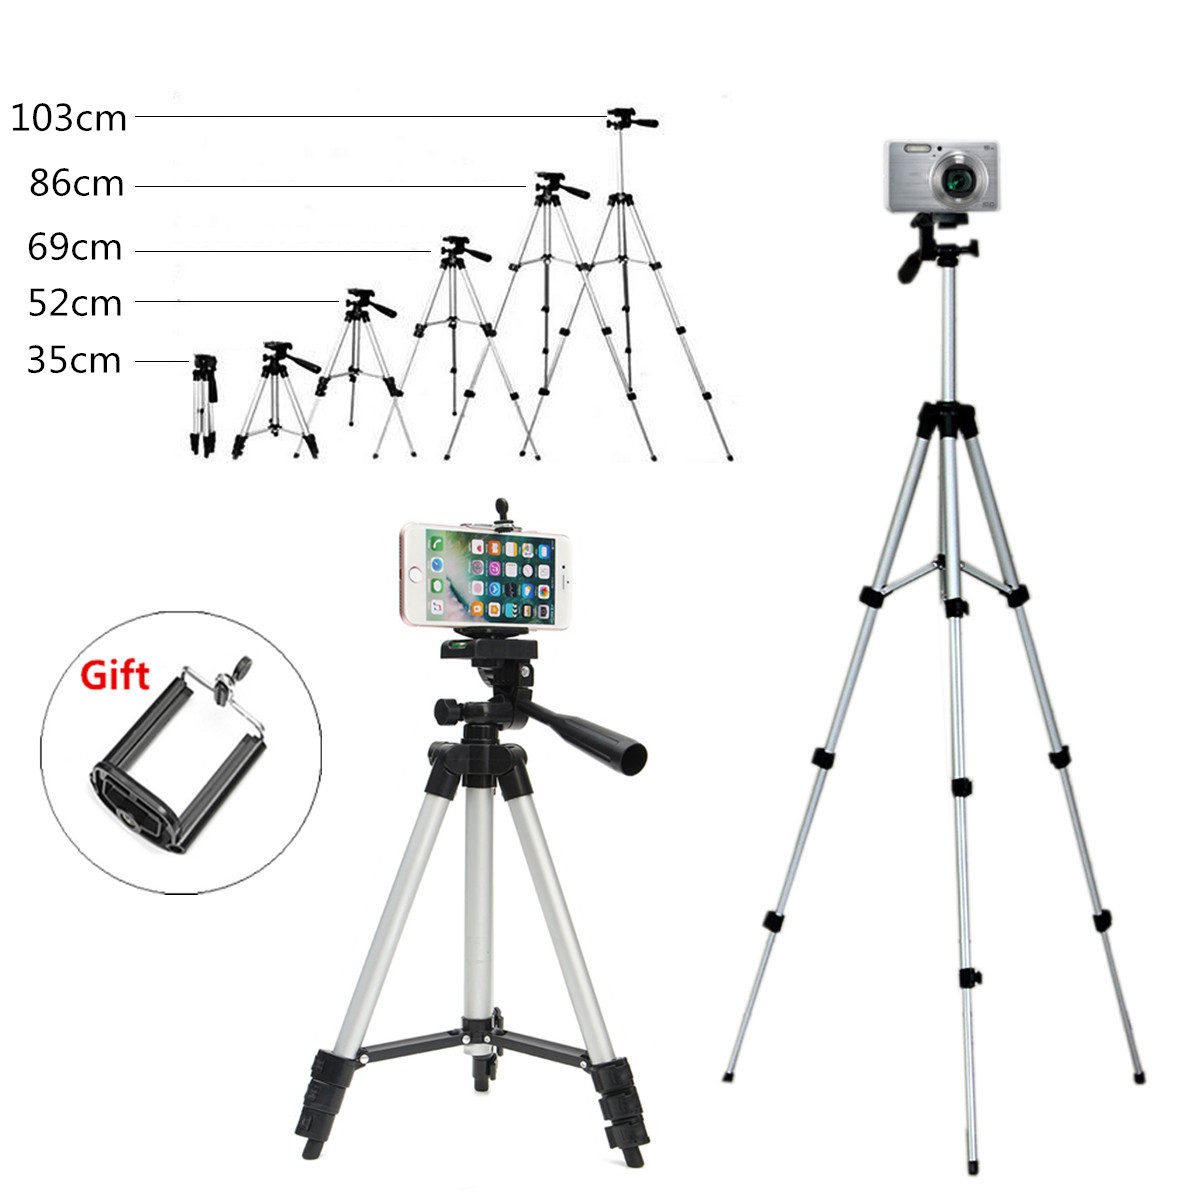 Universal Portable Tripod 4 Sections Tripod Phone Holder Camera Holder Smartphone For Canon For Sony For Nikon Compact Camera